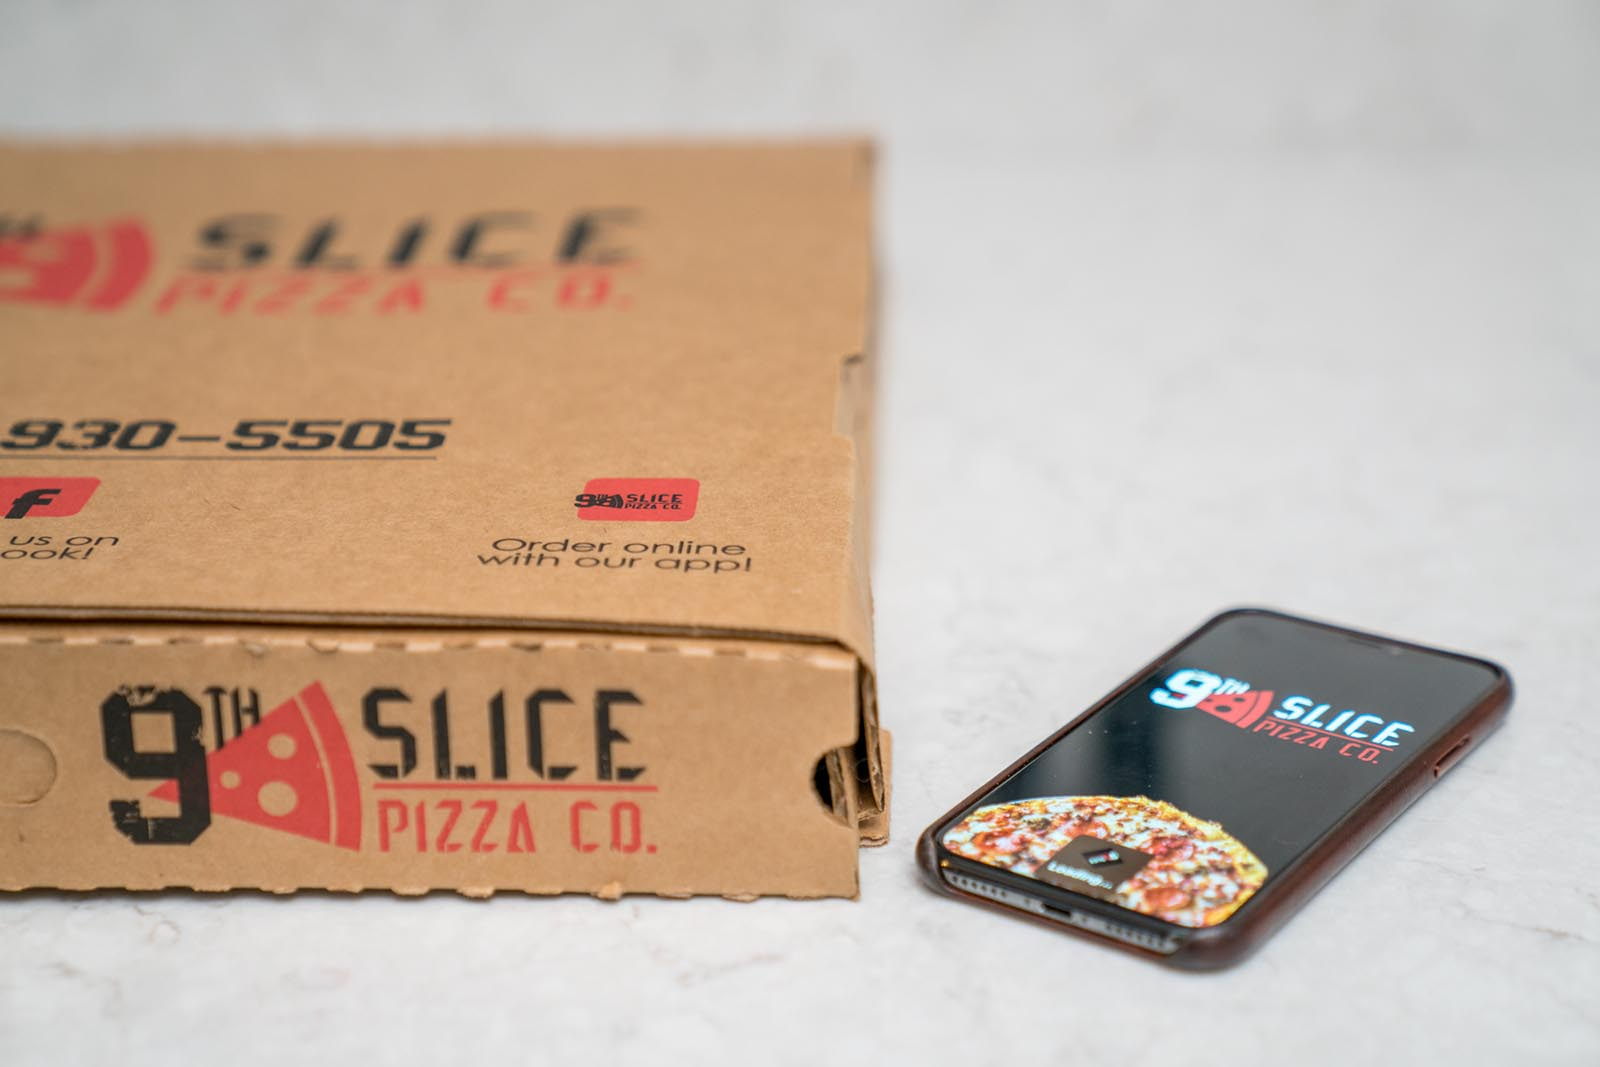 9th Slice Pizza Co